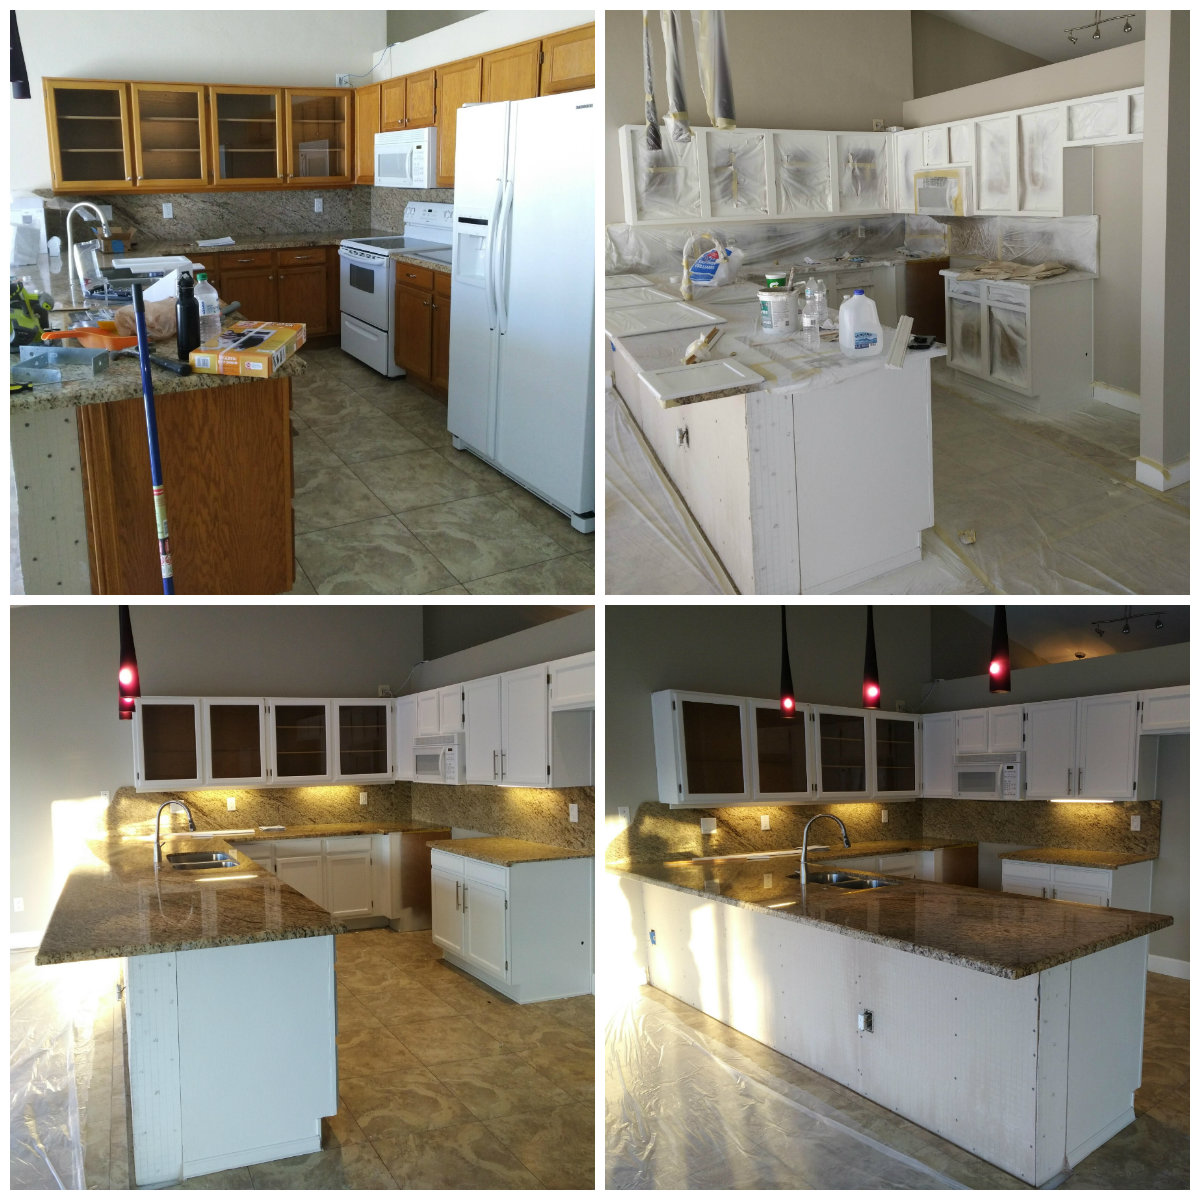 Kitchen Cabinets Refinishing: Kino's Painting & Remodeling